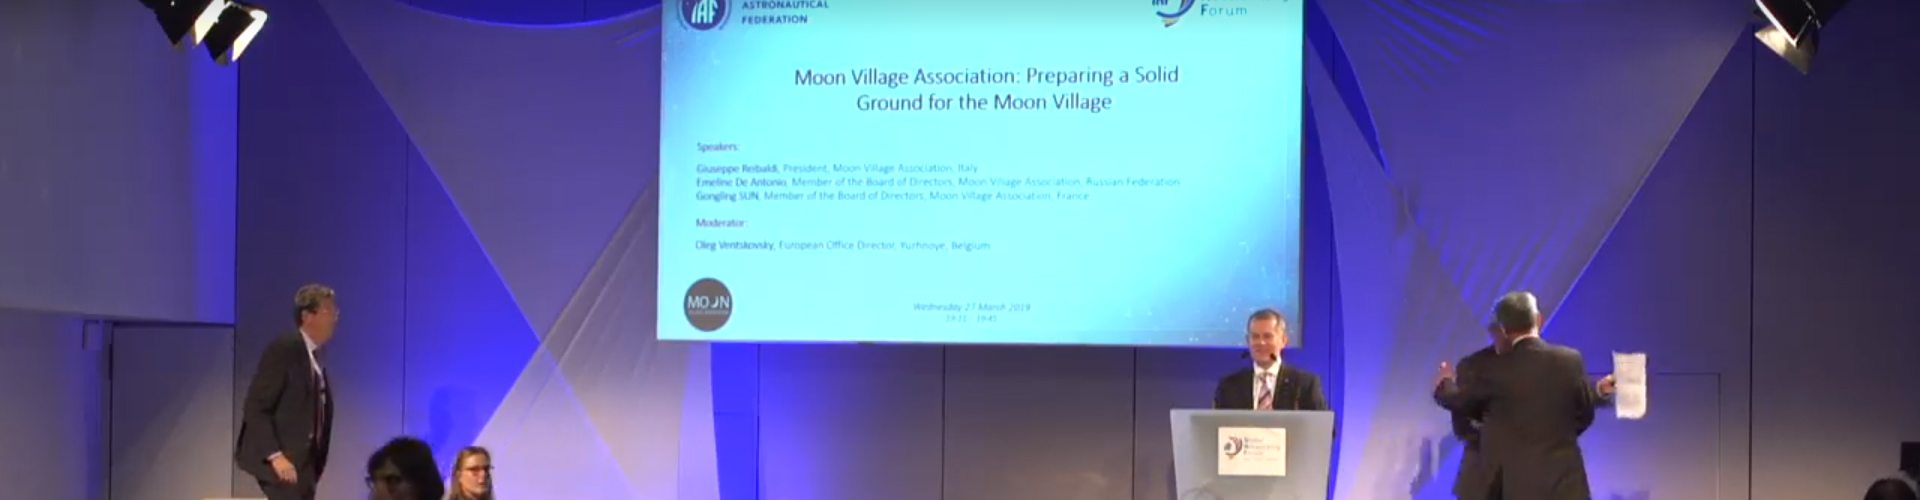 GNF – Moon Village Association: Preparing a Solid Ground for the Moon Village